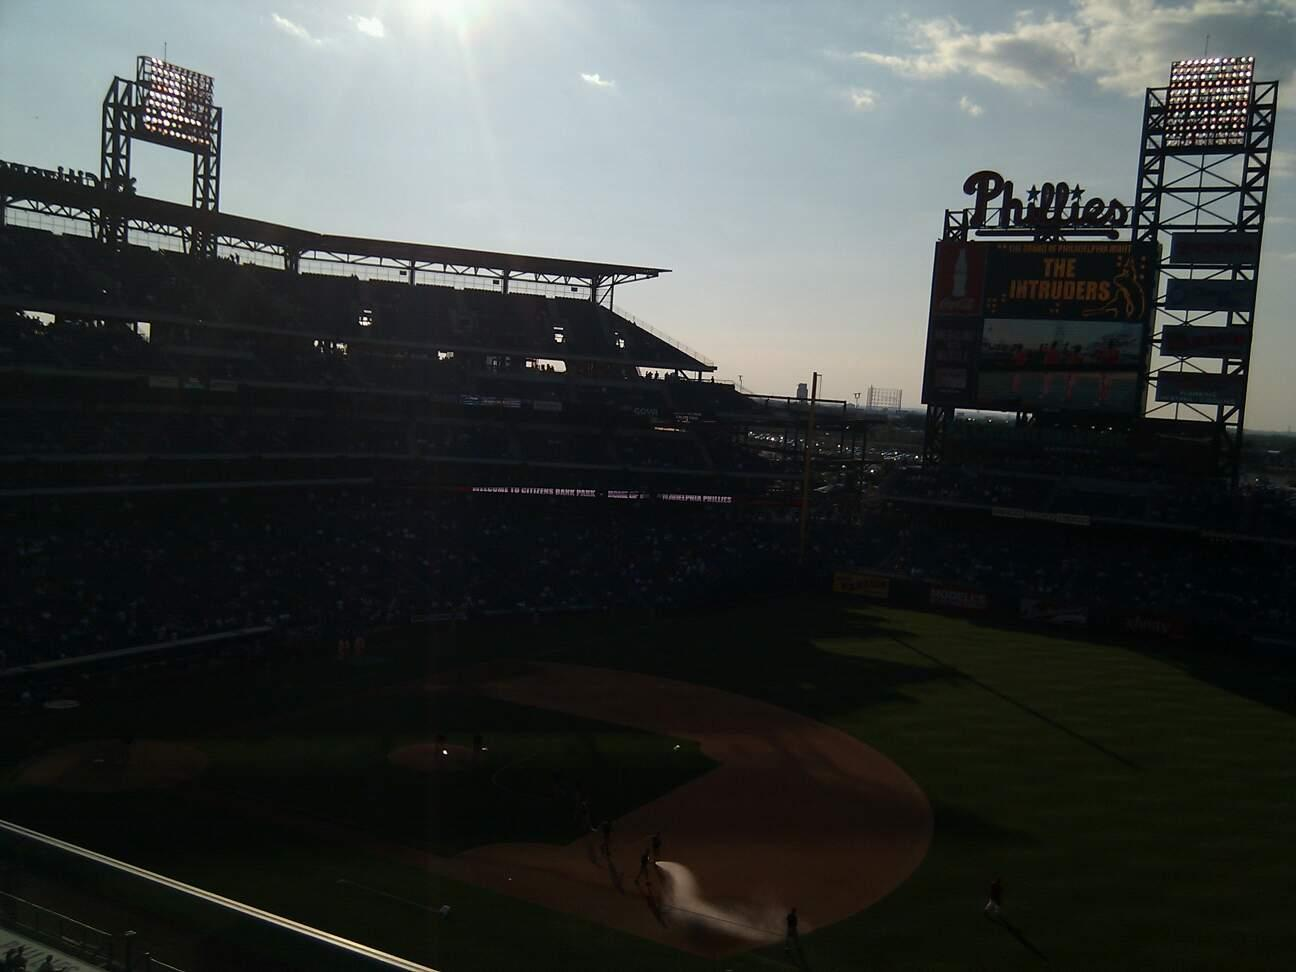 Citizens Bank Park Section 312 Row 2 Seat 9